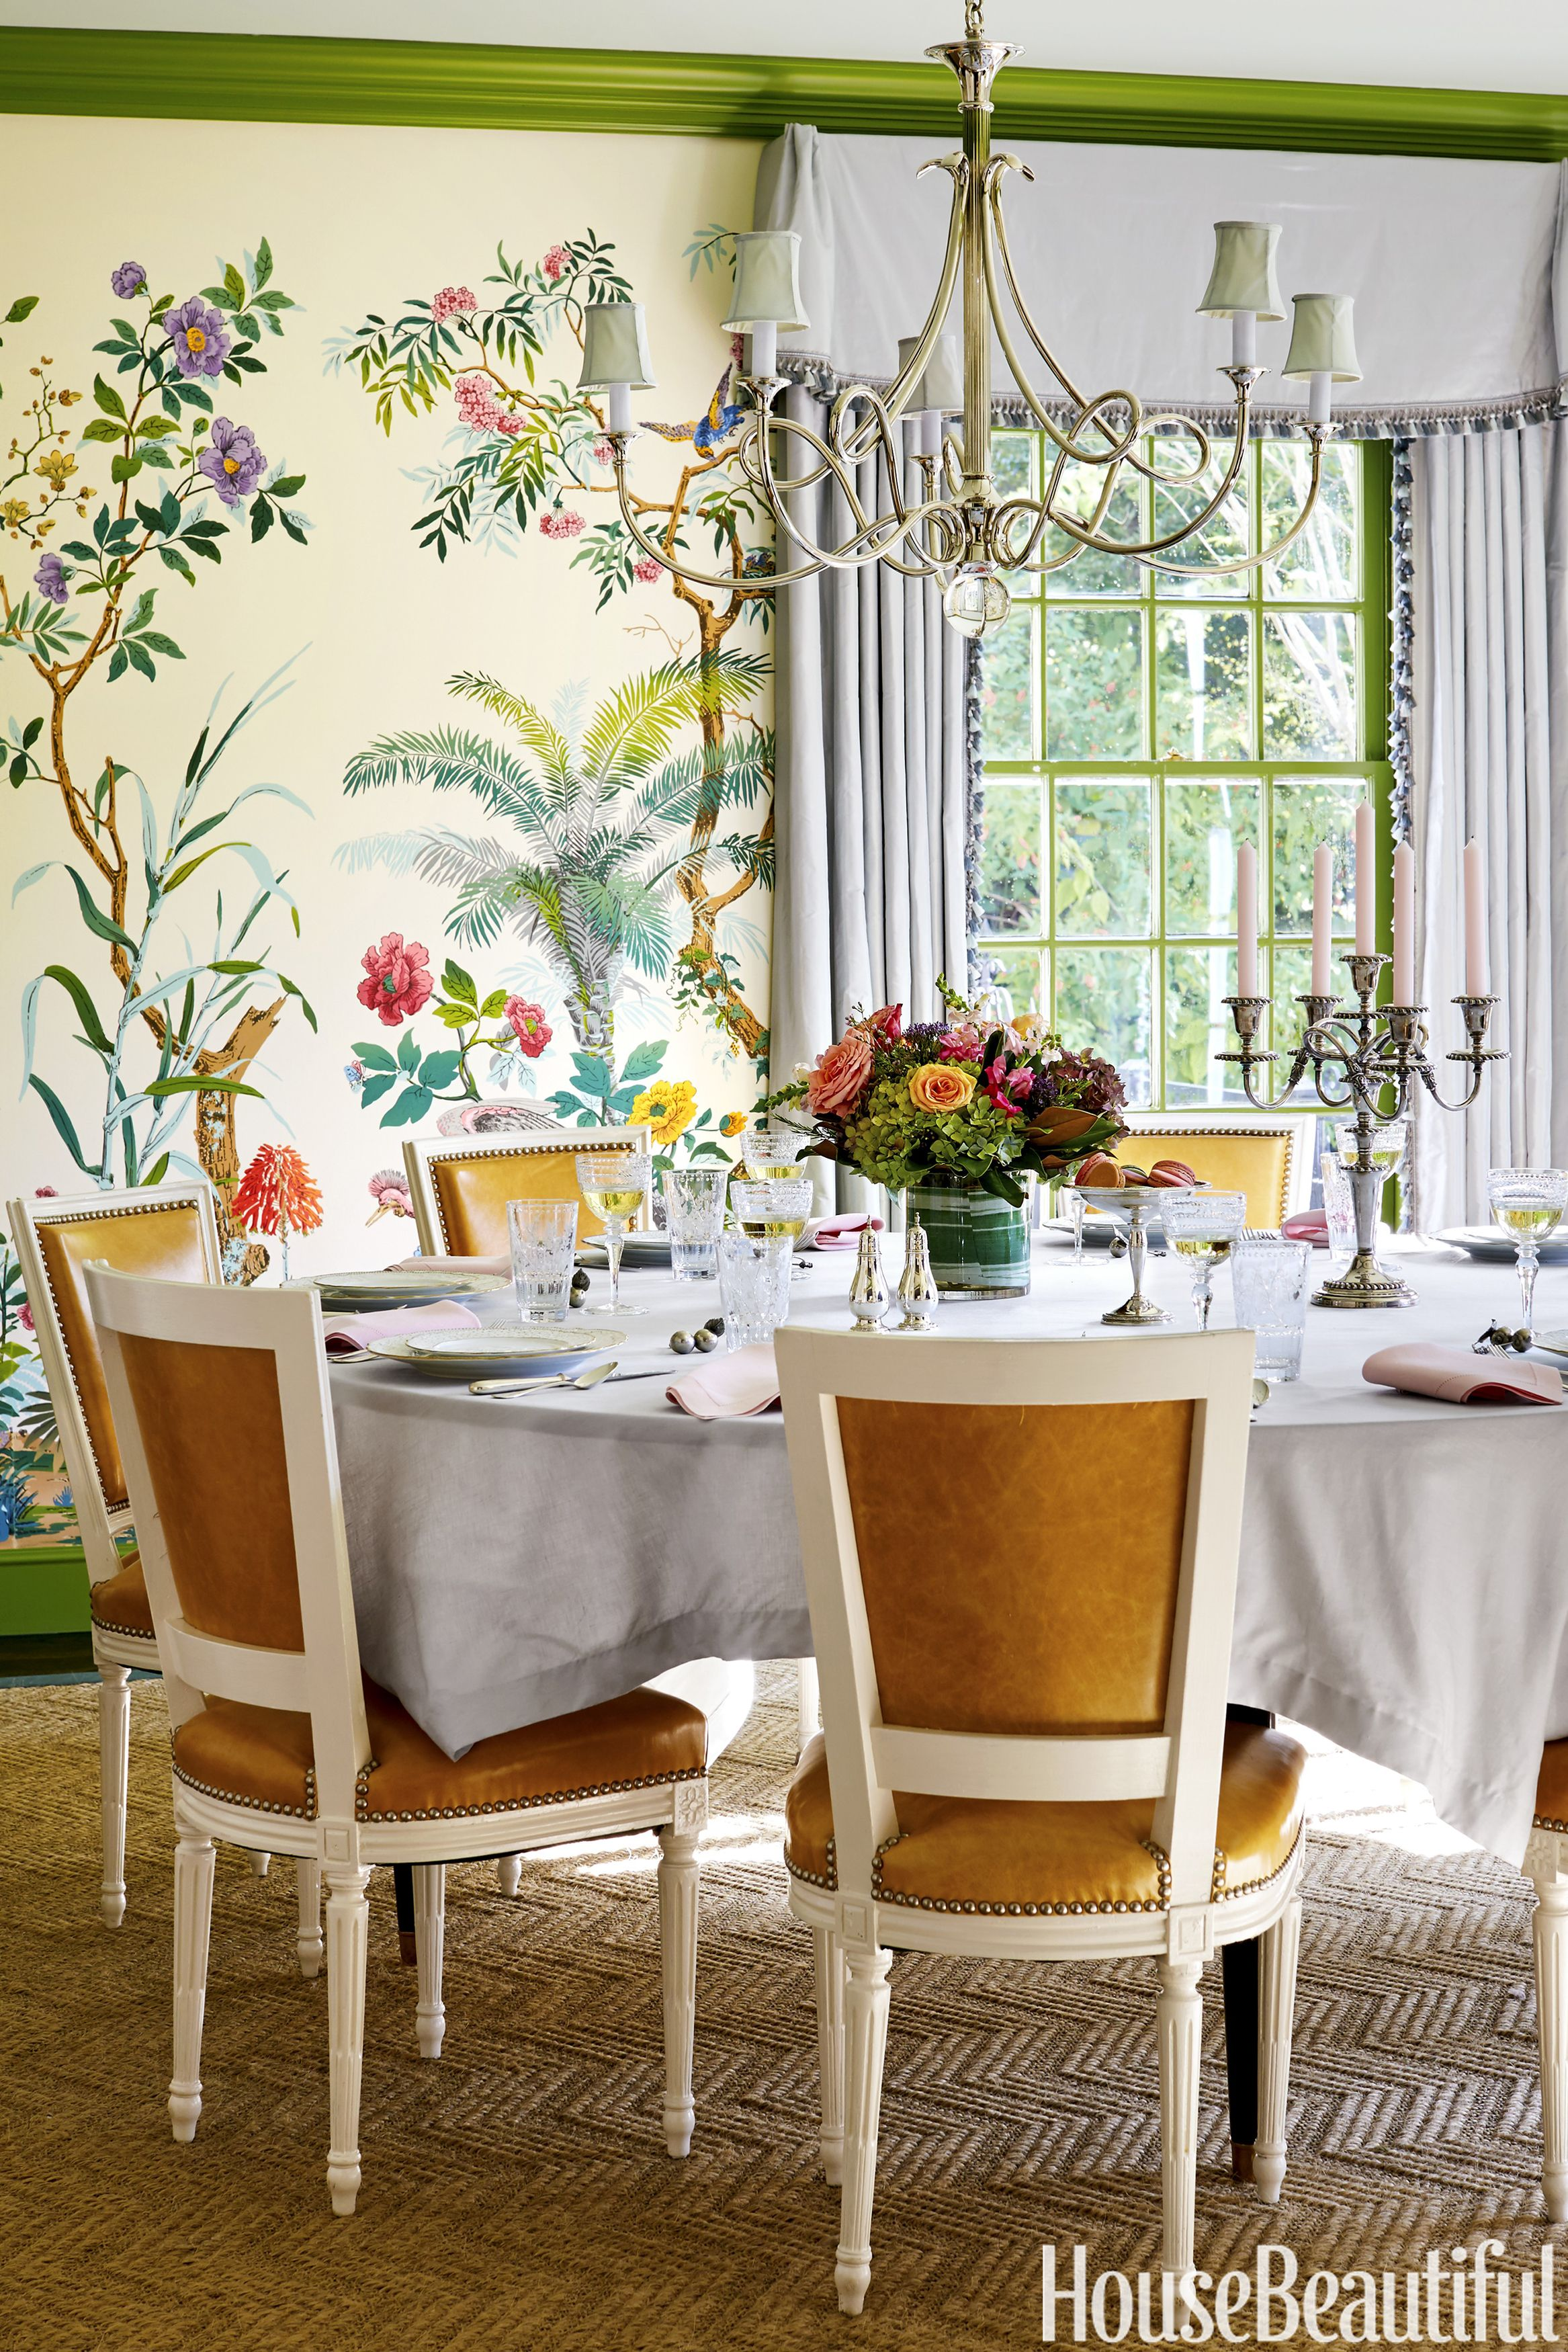 The Dining Room Now Bursts With High Octane Design, From The Zuber  Wallpaper To